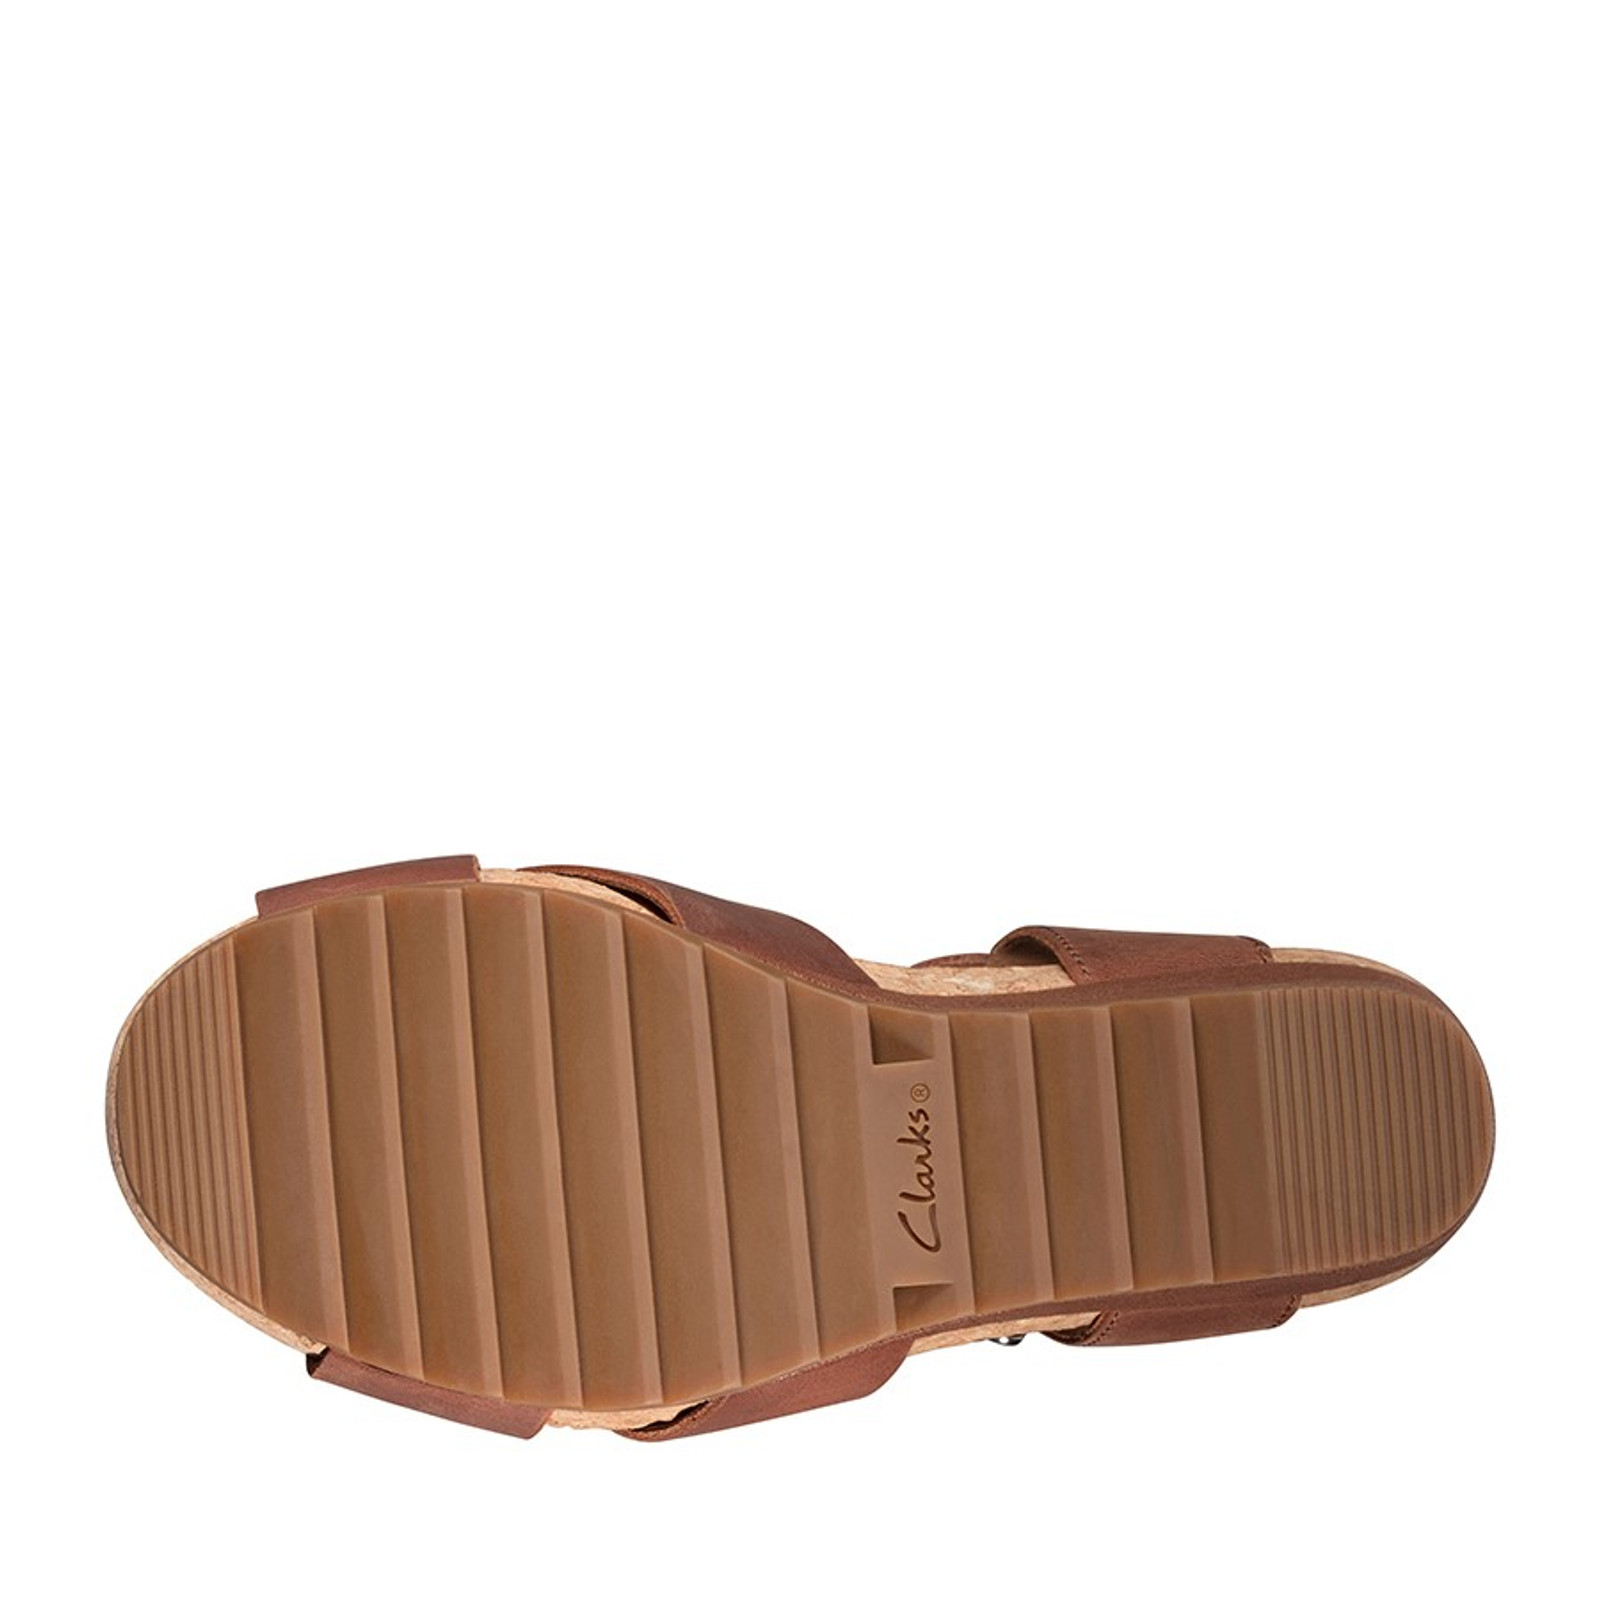 Clarks Womens FLEX SUN Tan Leather